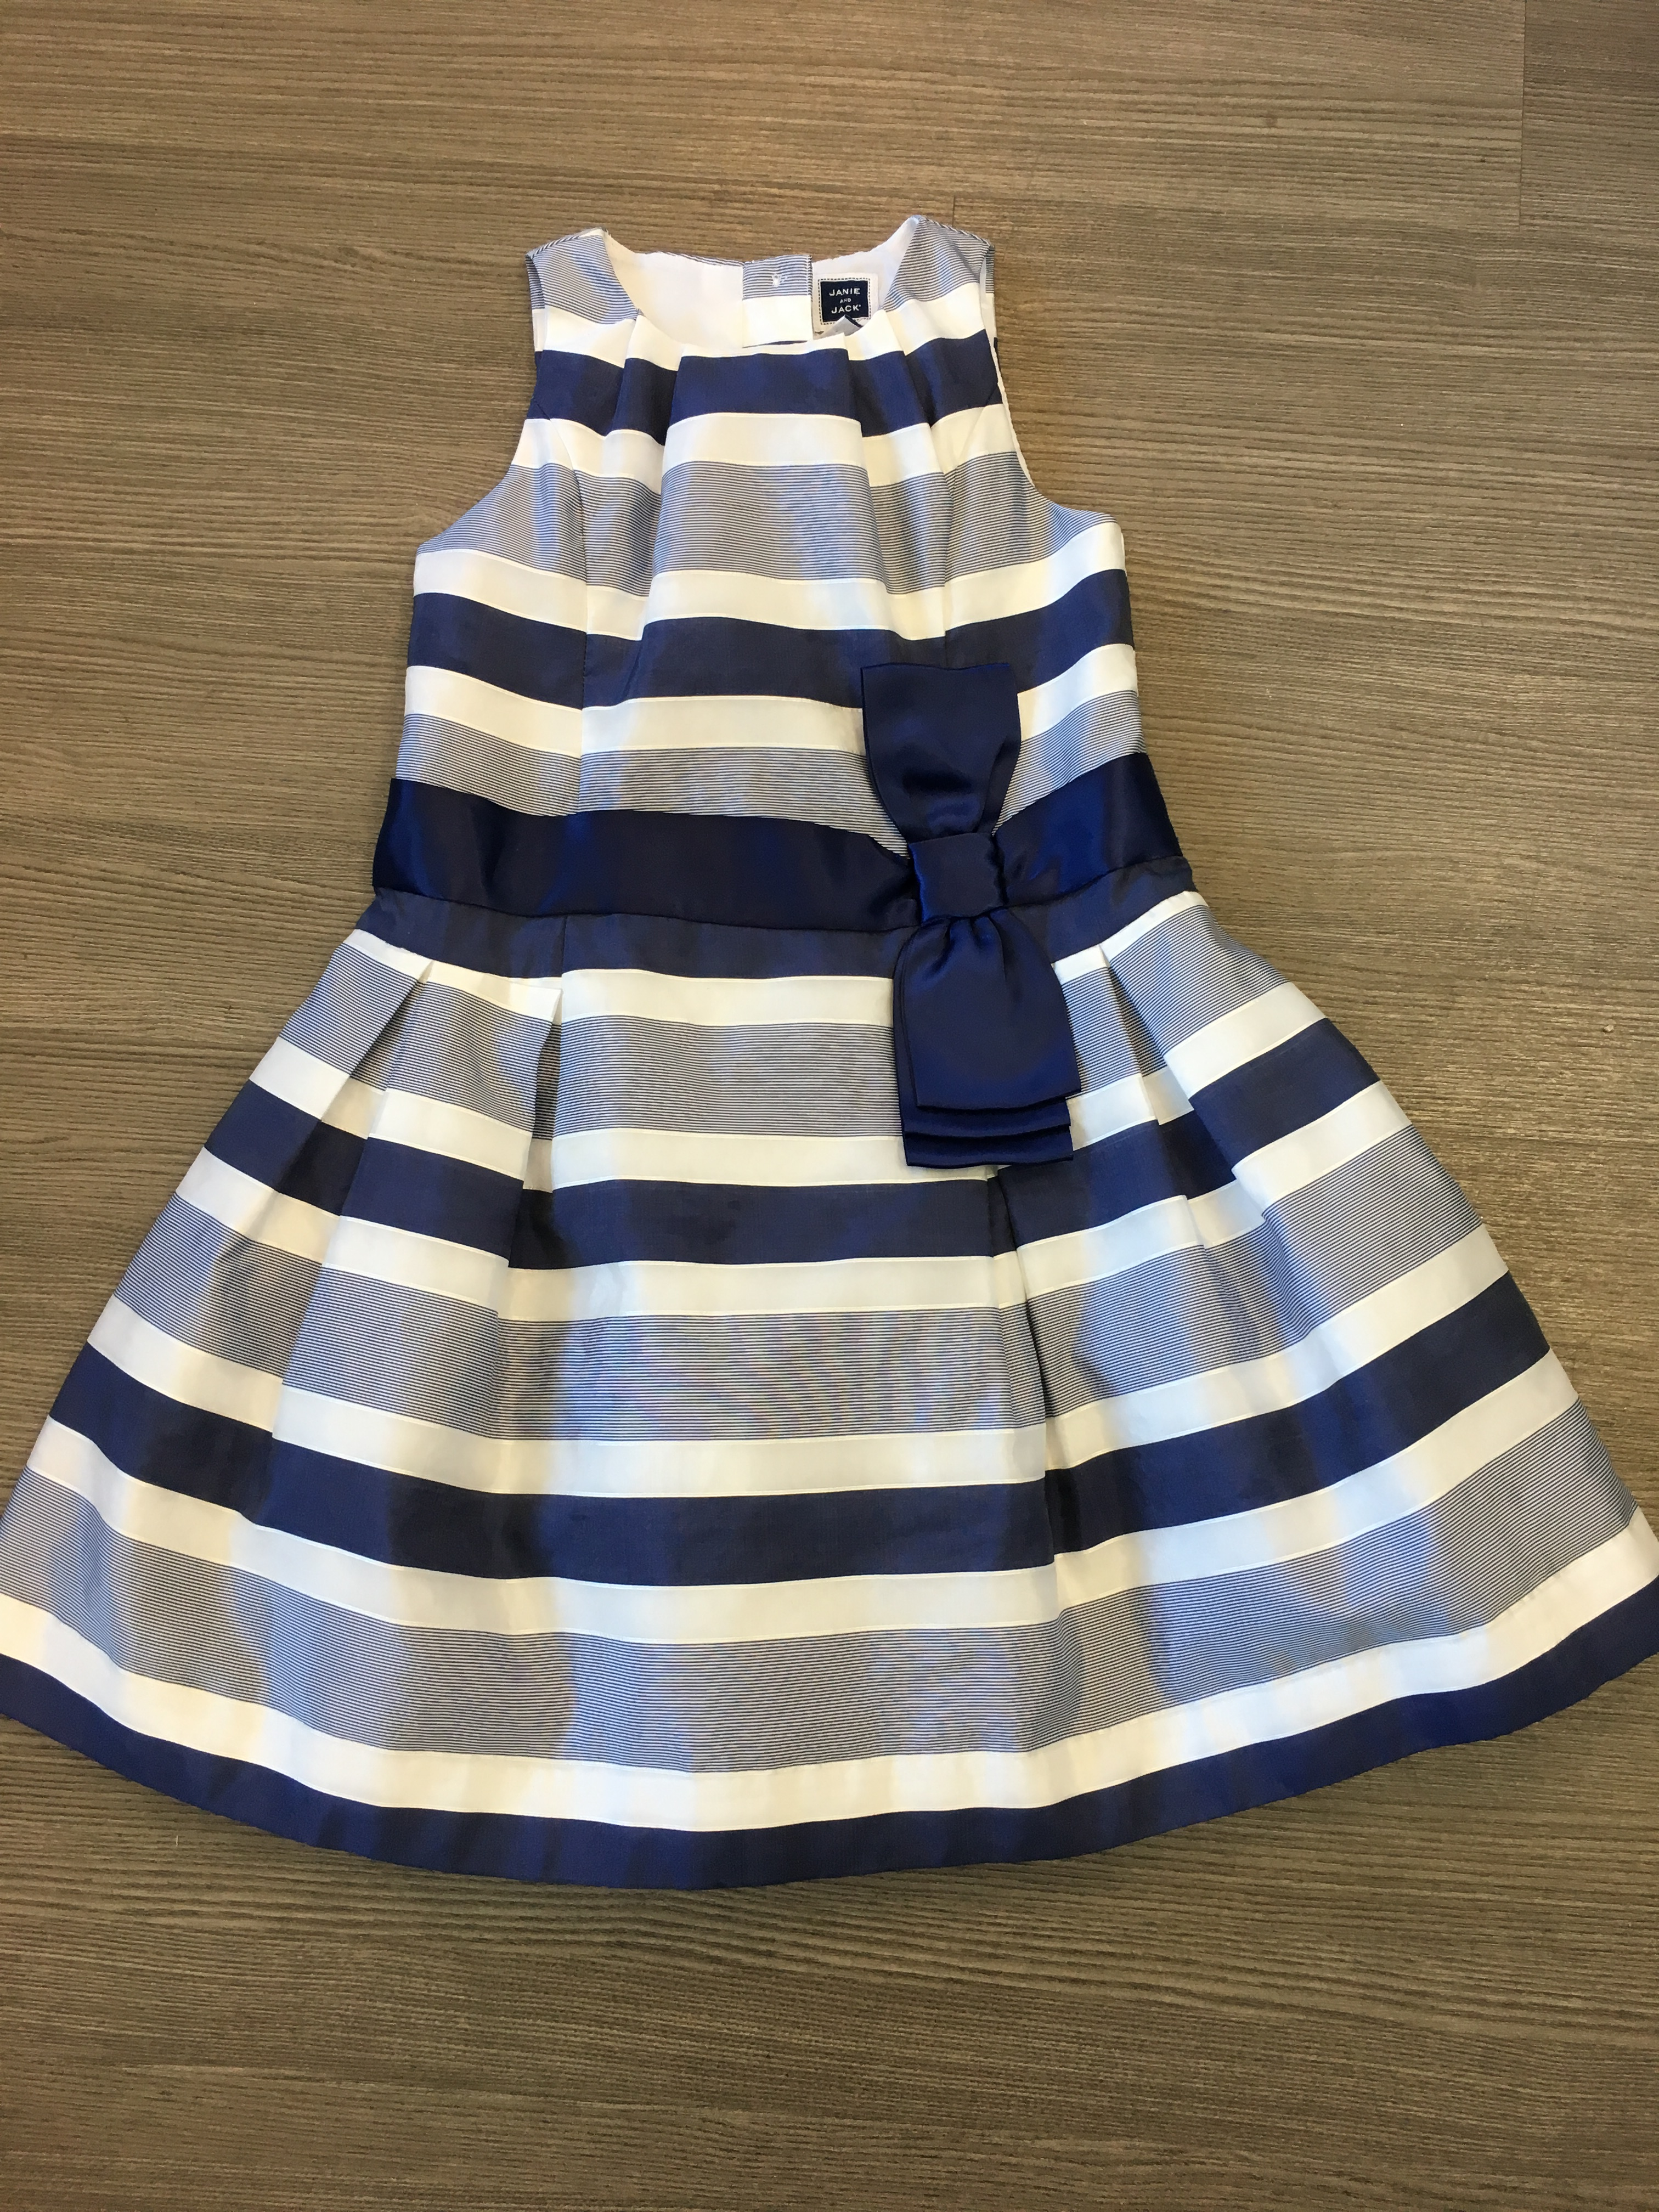 Janie-and-Jack-Size-6-Stripe-Dress_8431A.jpg